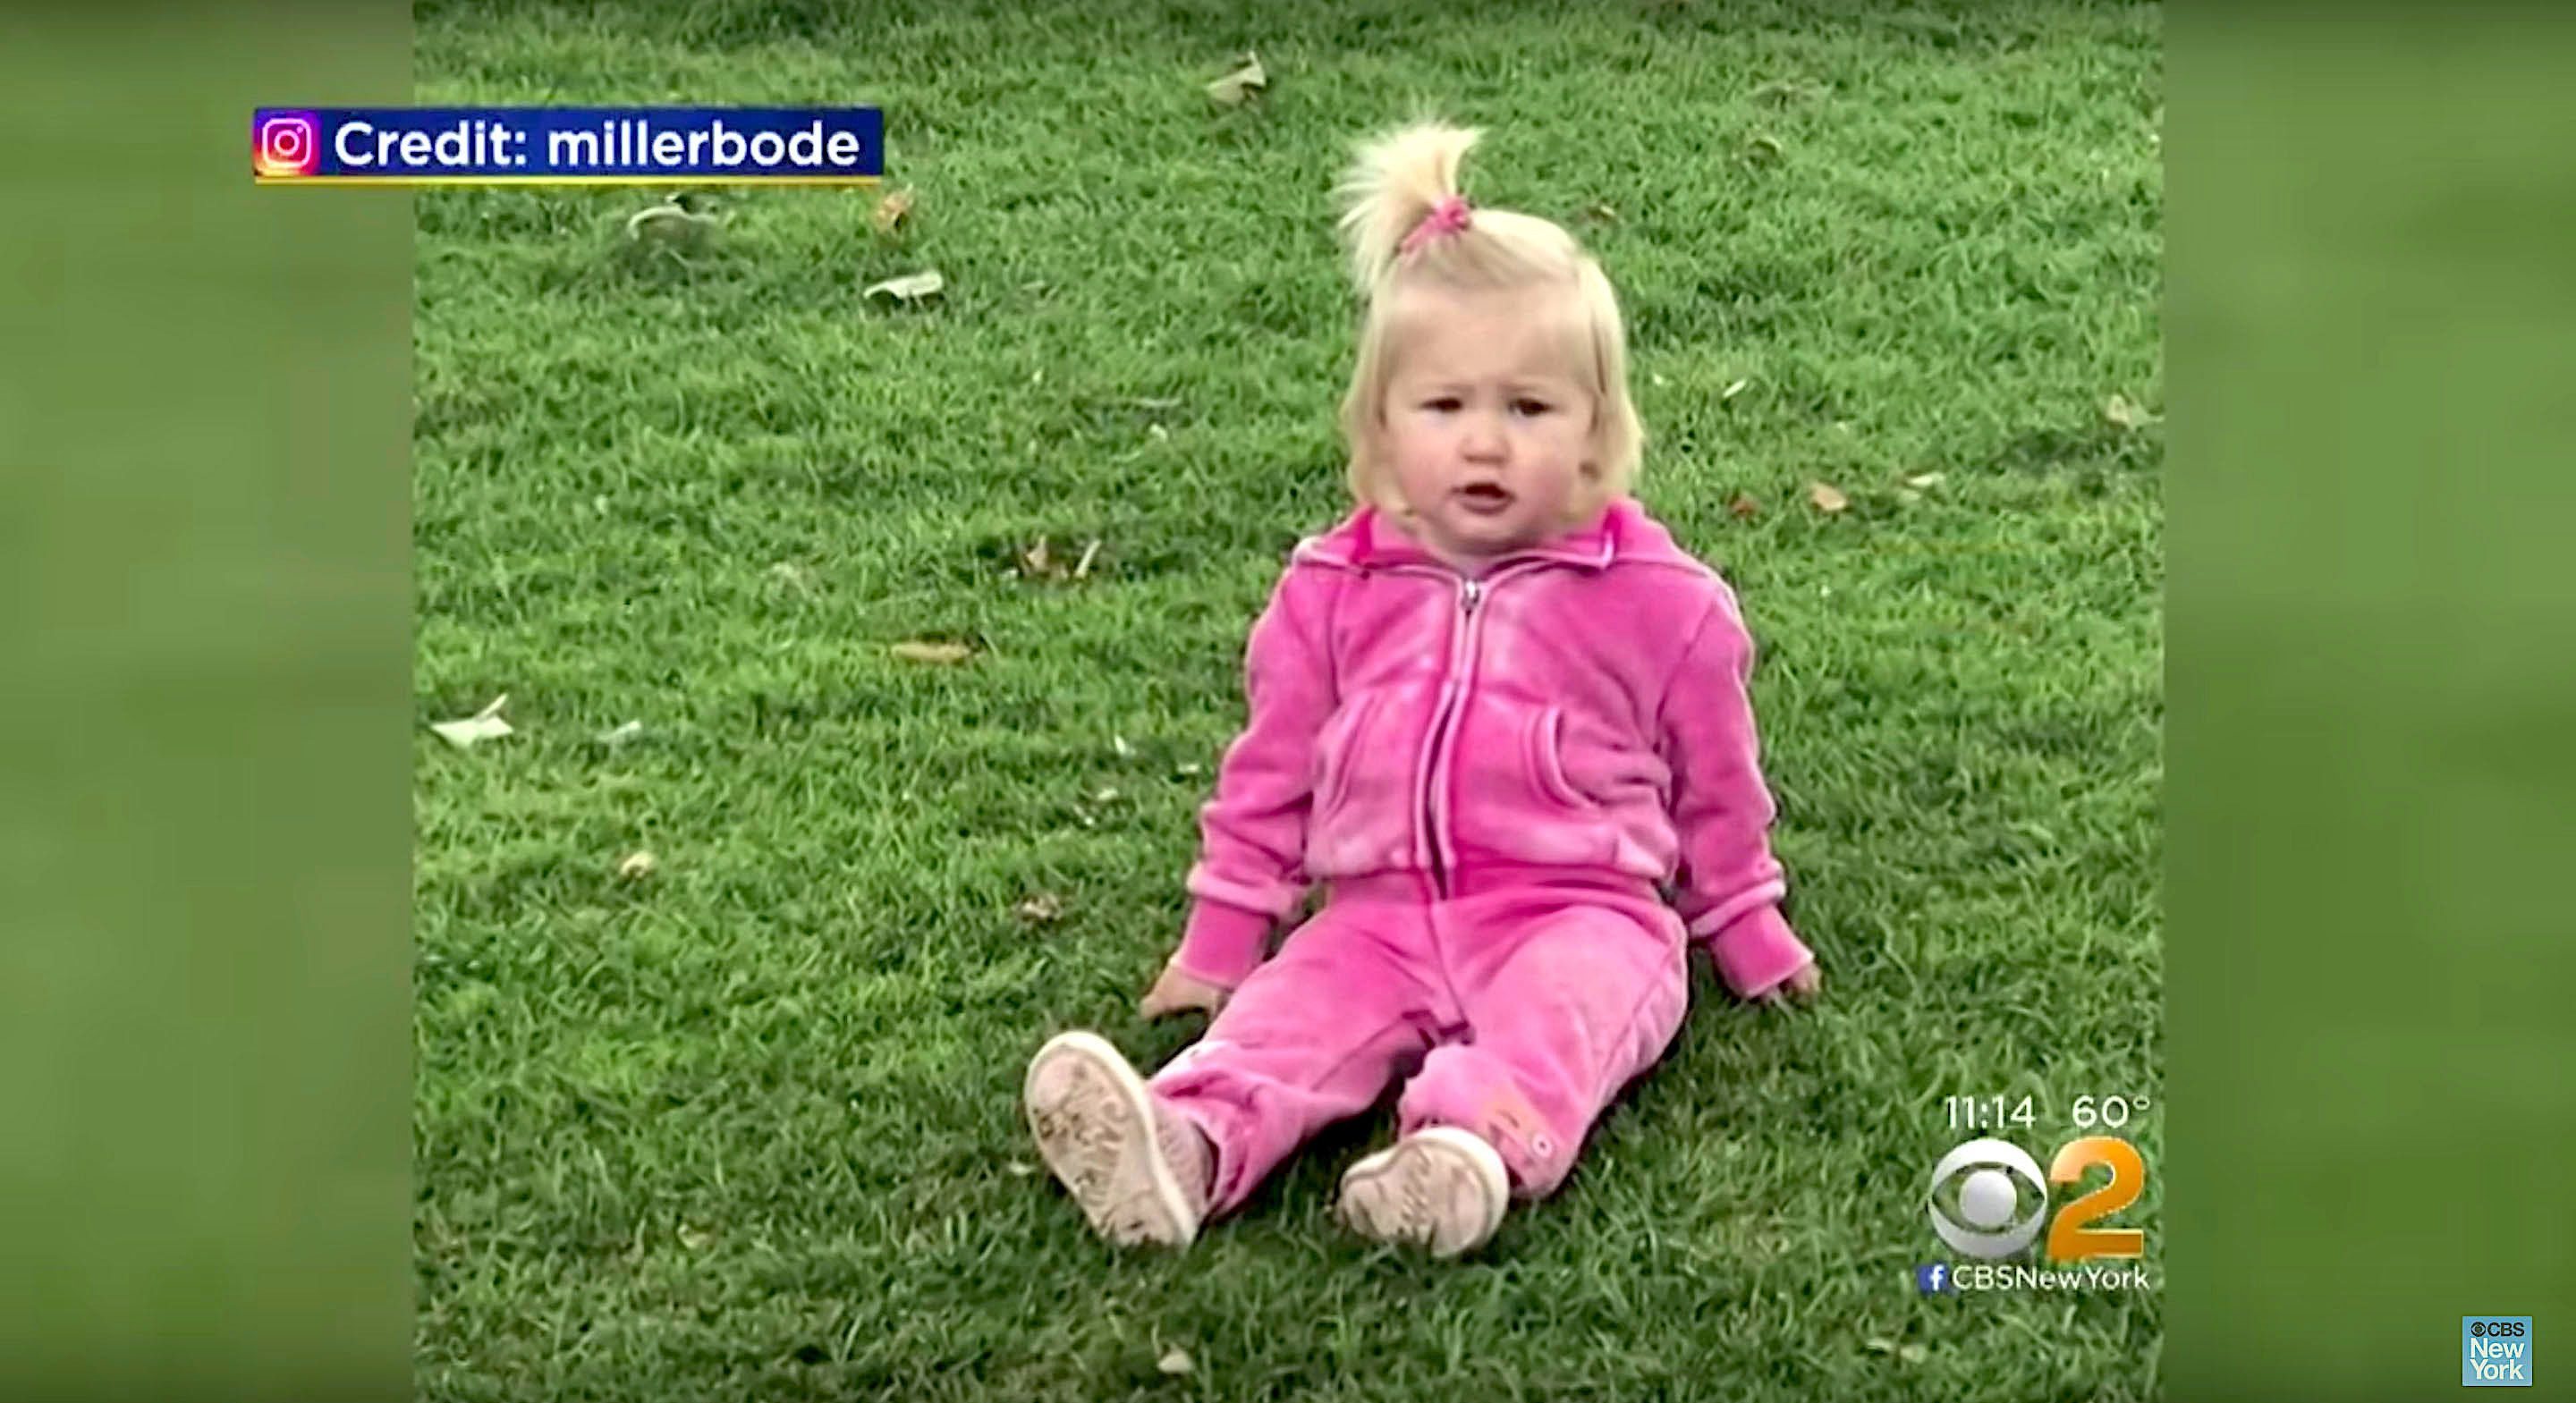 Emmeline Grier Miller the 19-month-old daughter of Bode Miller and Morgan Beck drowned